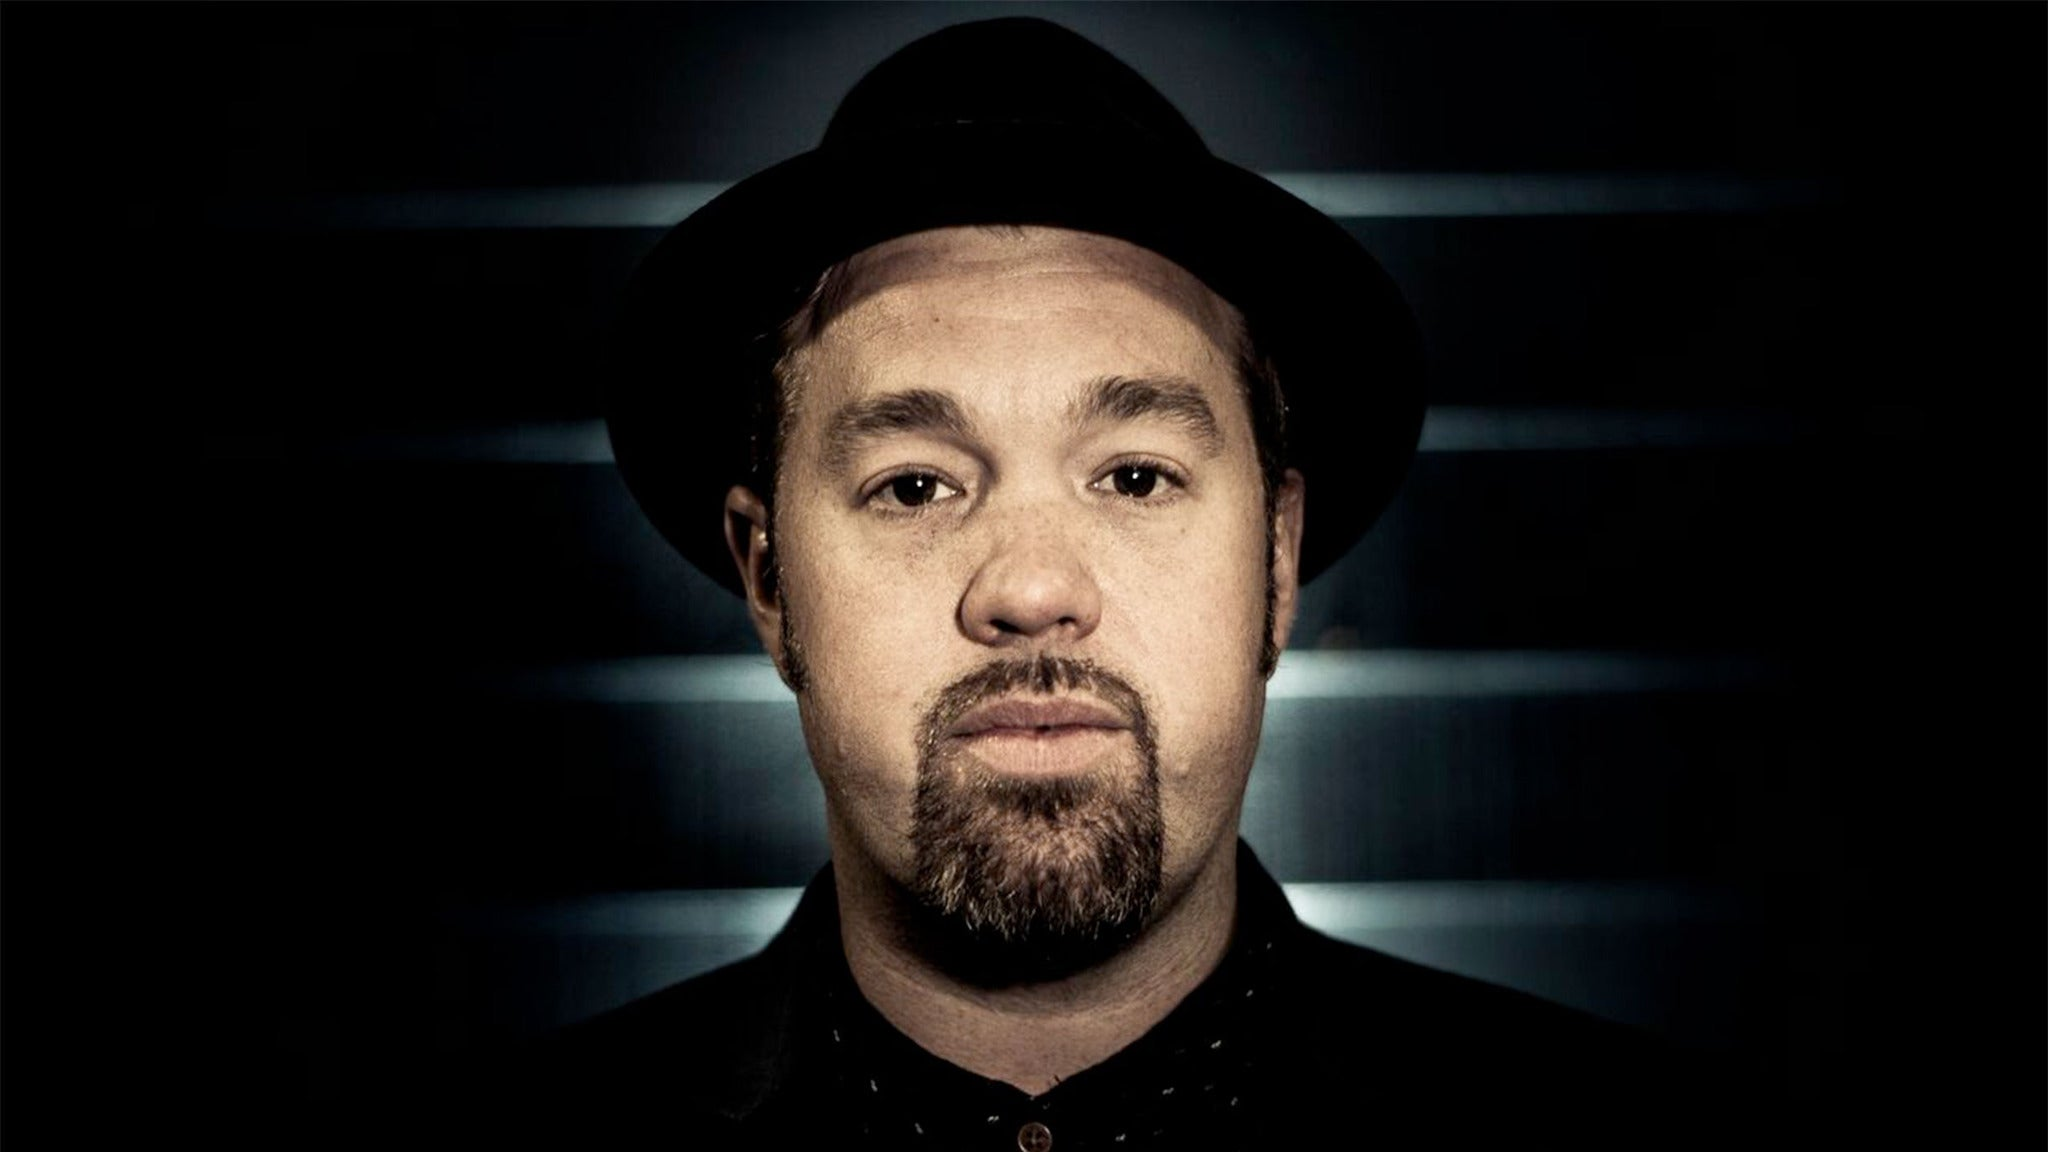 Eric Krasno Of Soulive / The Marcus King Band